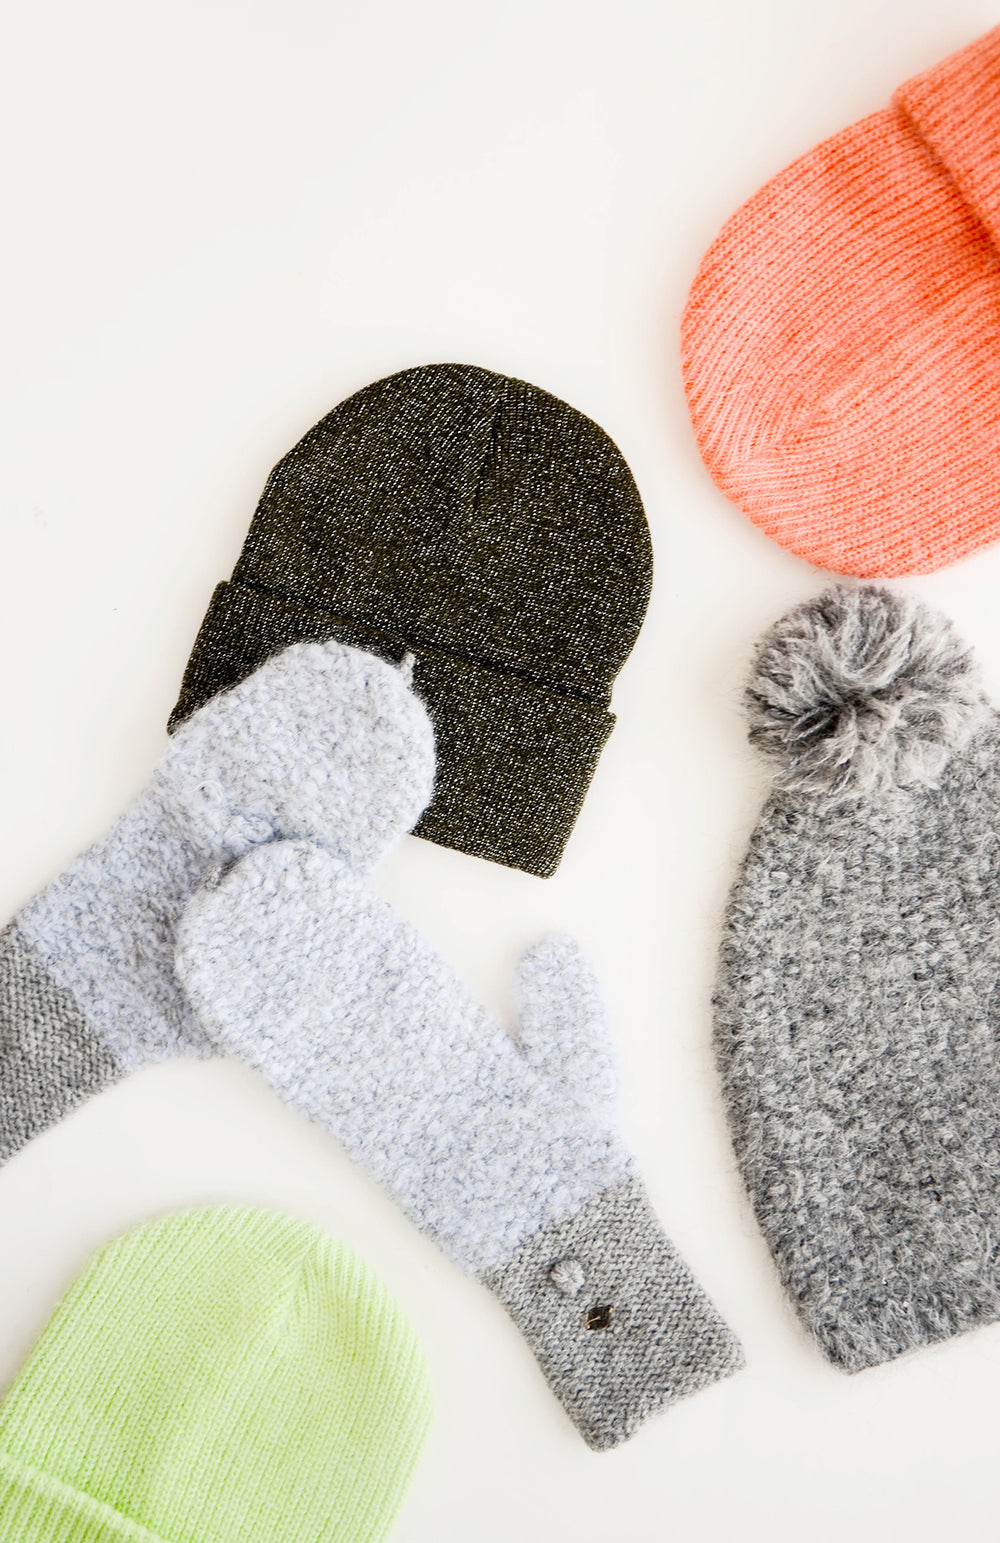 new knits to make winter a little less terrible